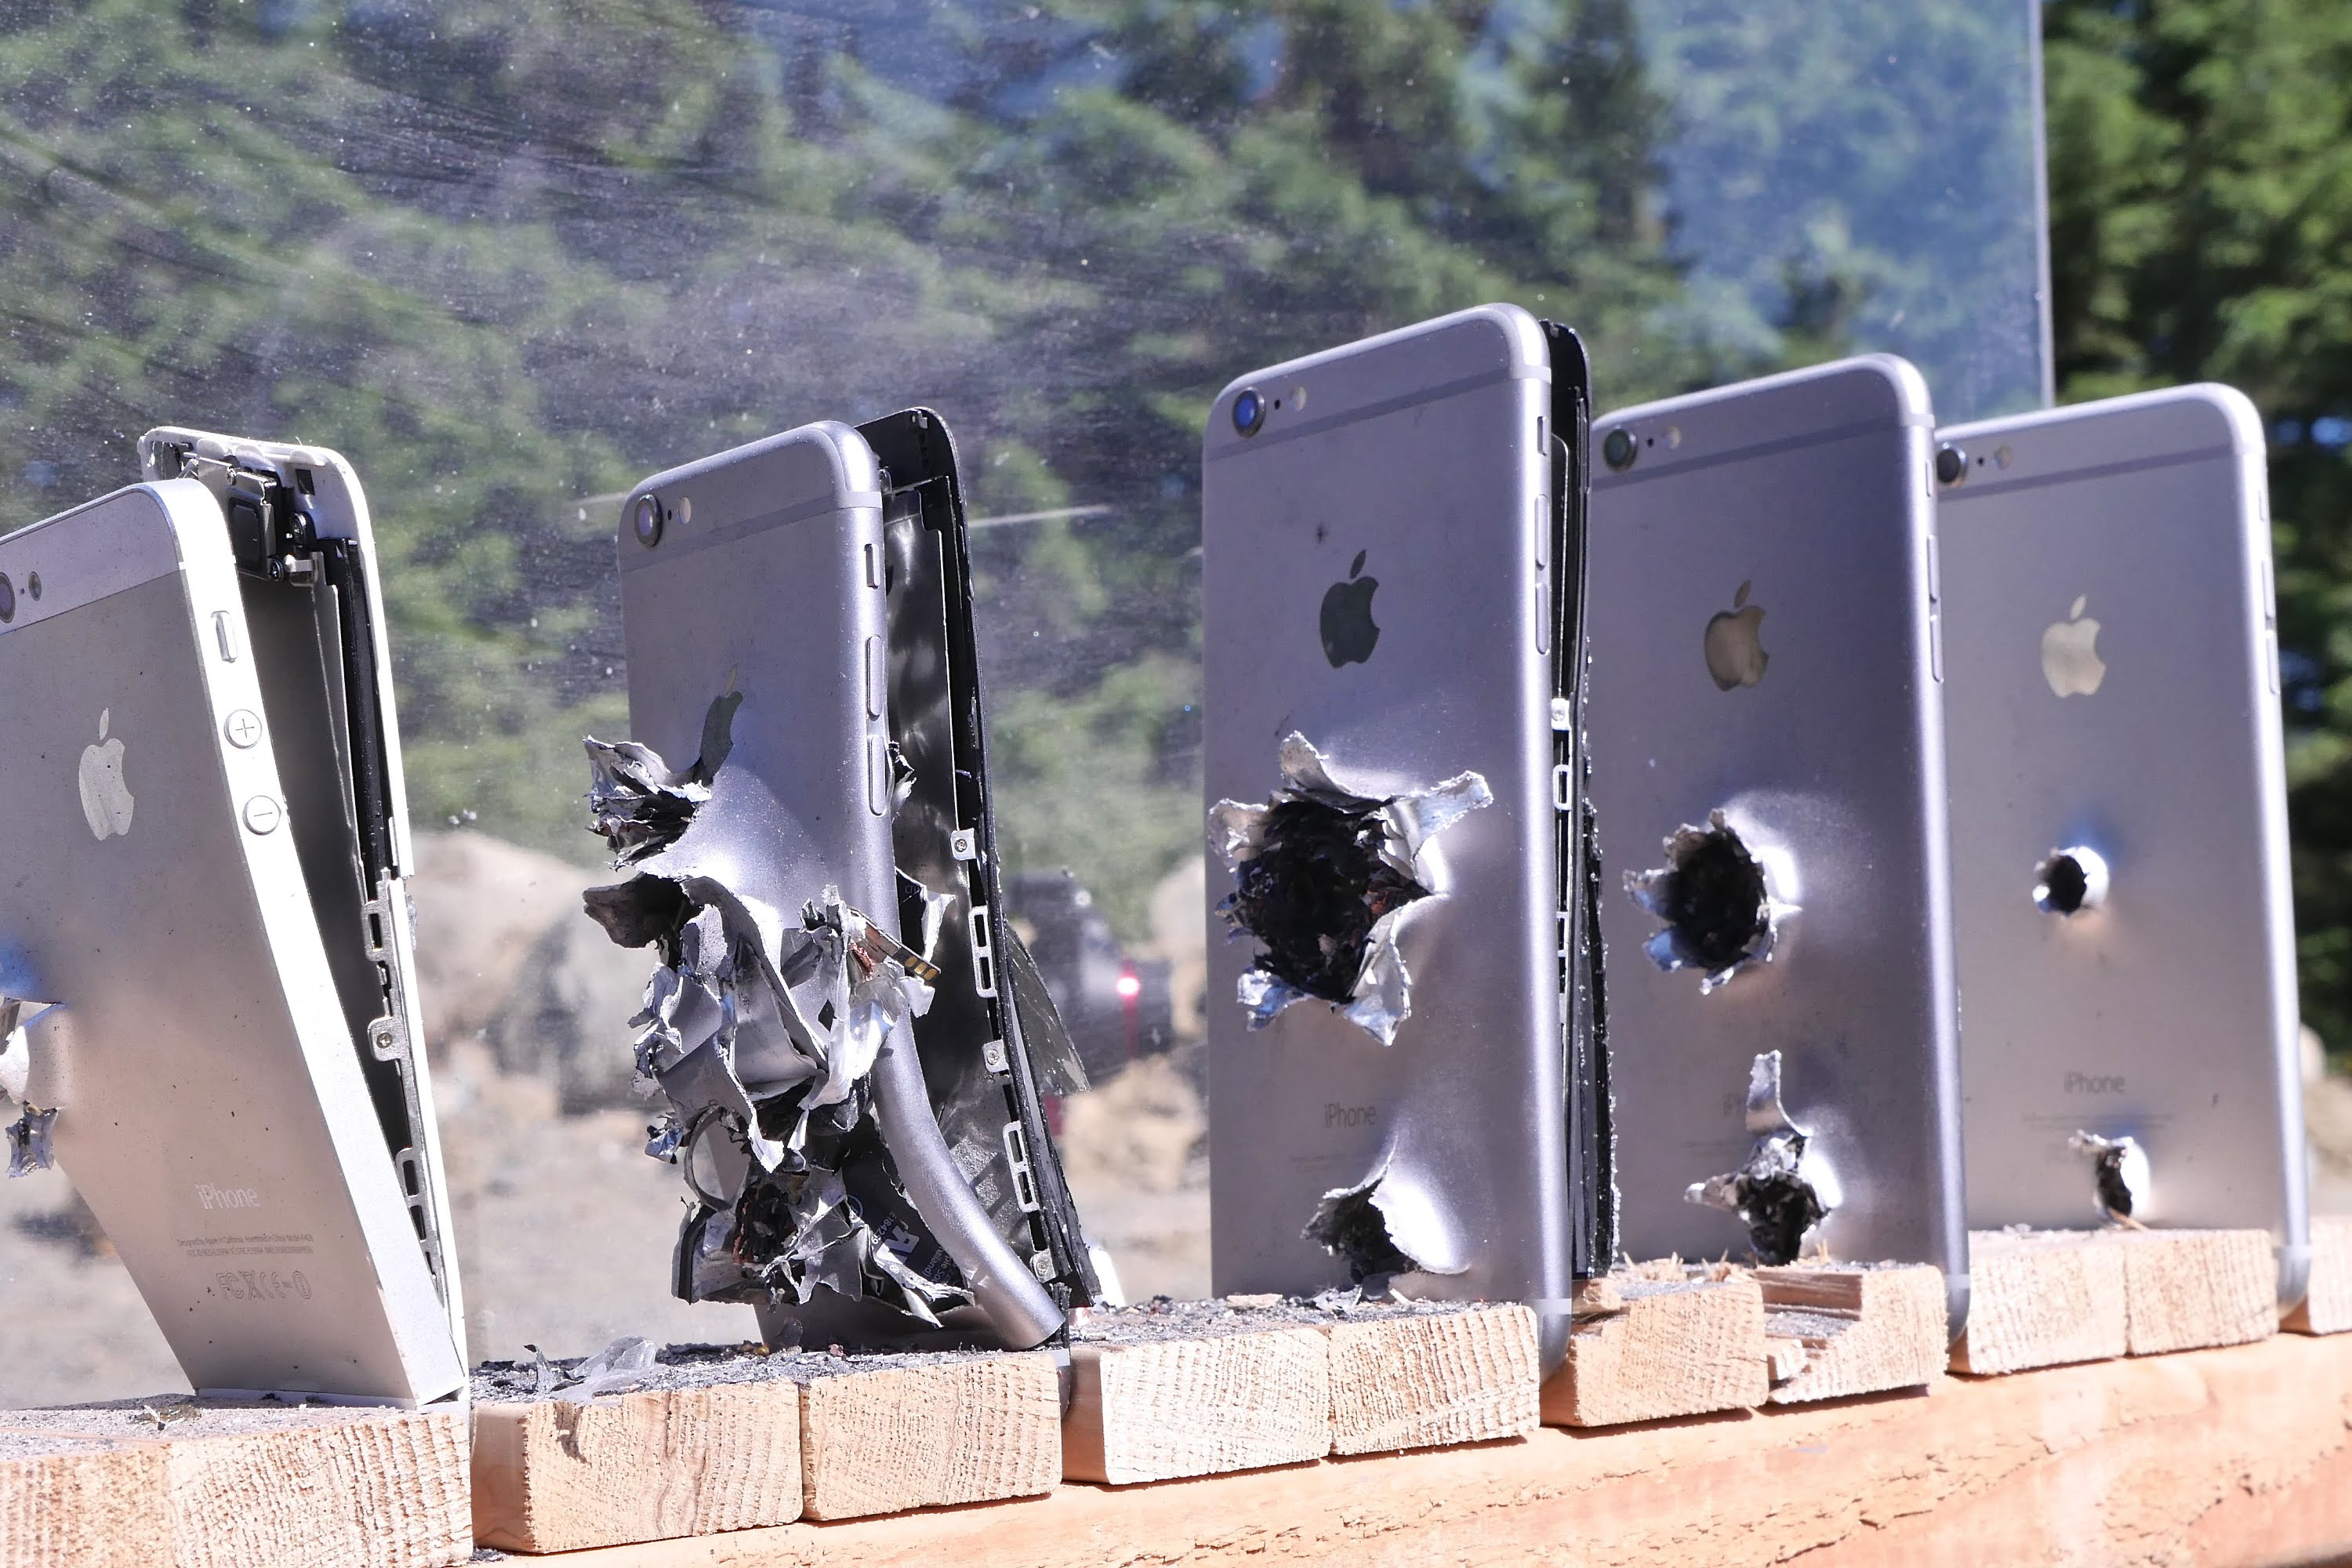 How Many iPhones It Takes to Stop an AK-47 Bullet? This Video Has The Answer